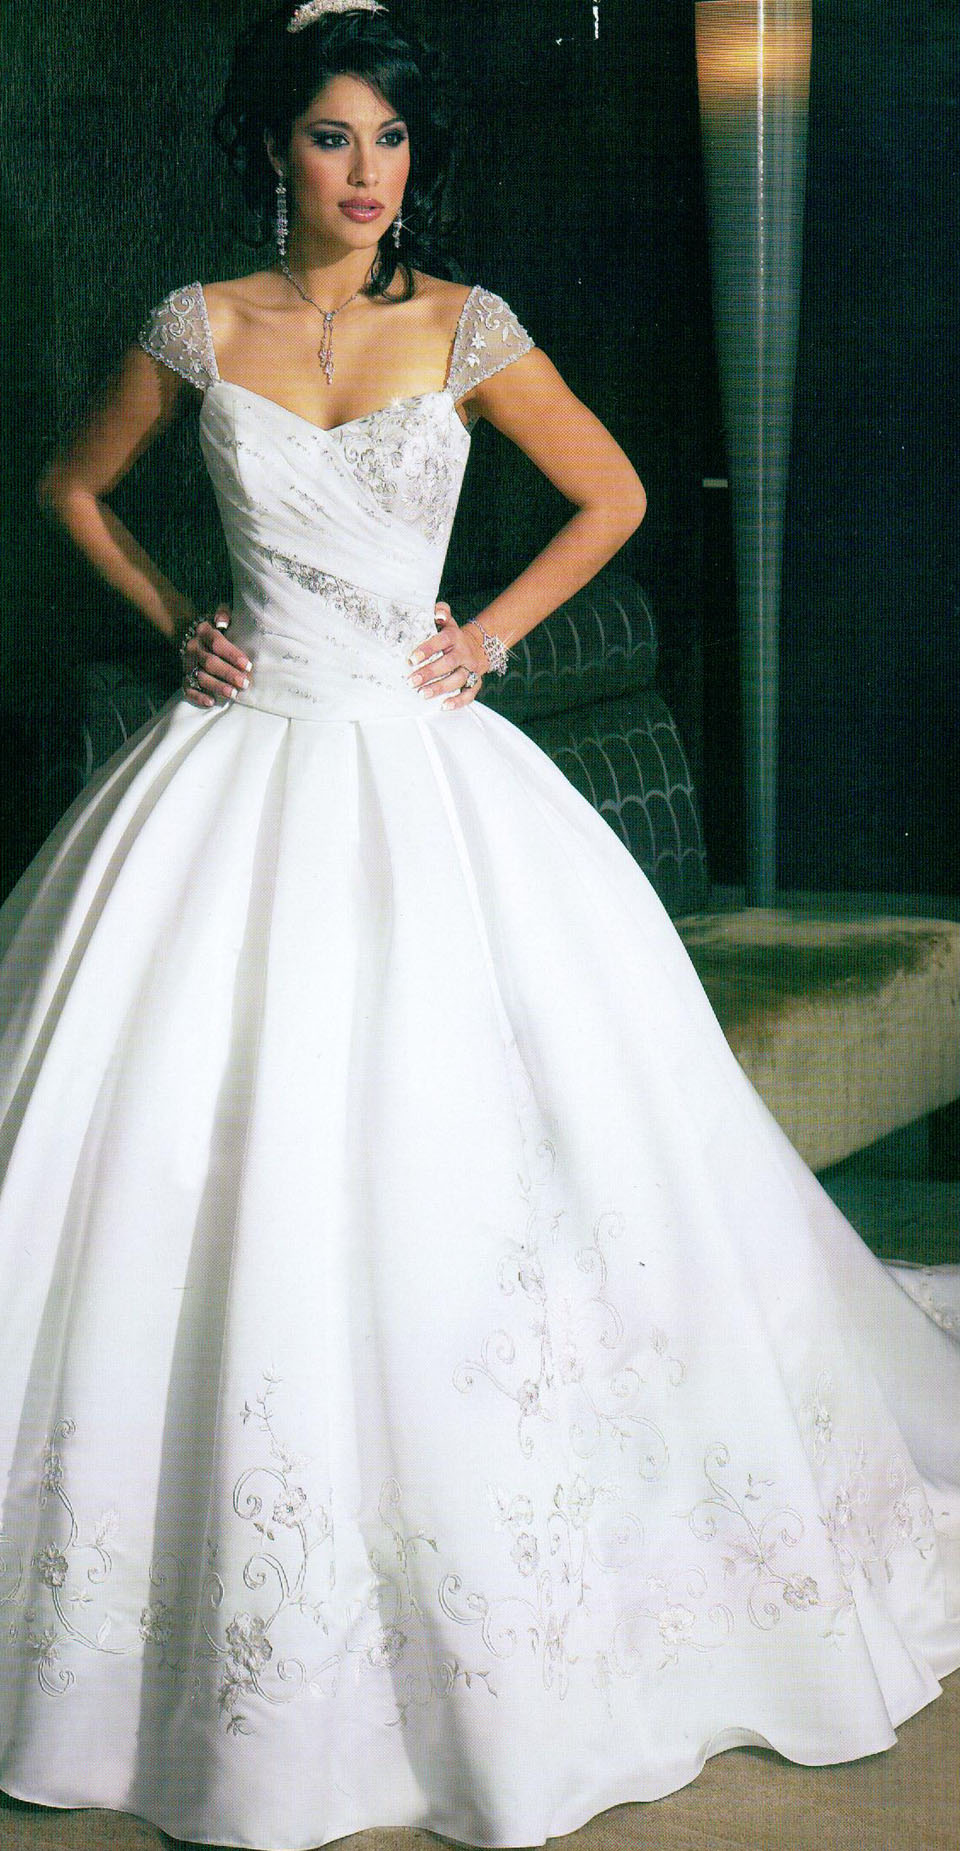 Outlet Wedding Dresses Las Vegas - Wedding Dresses In Jax